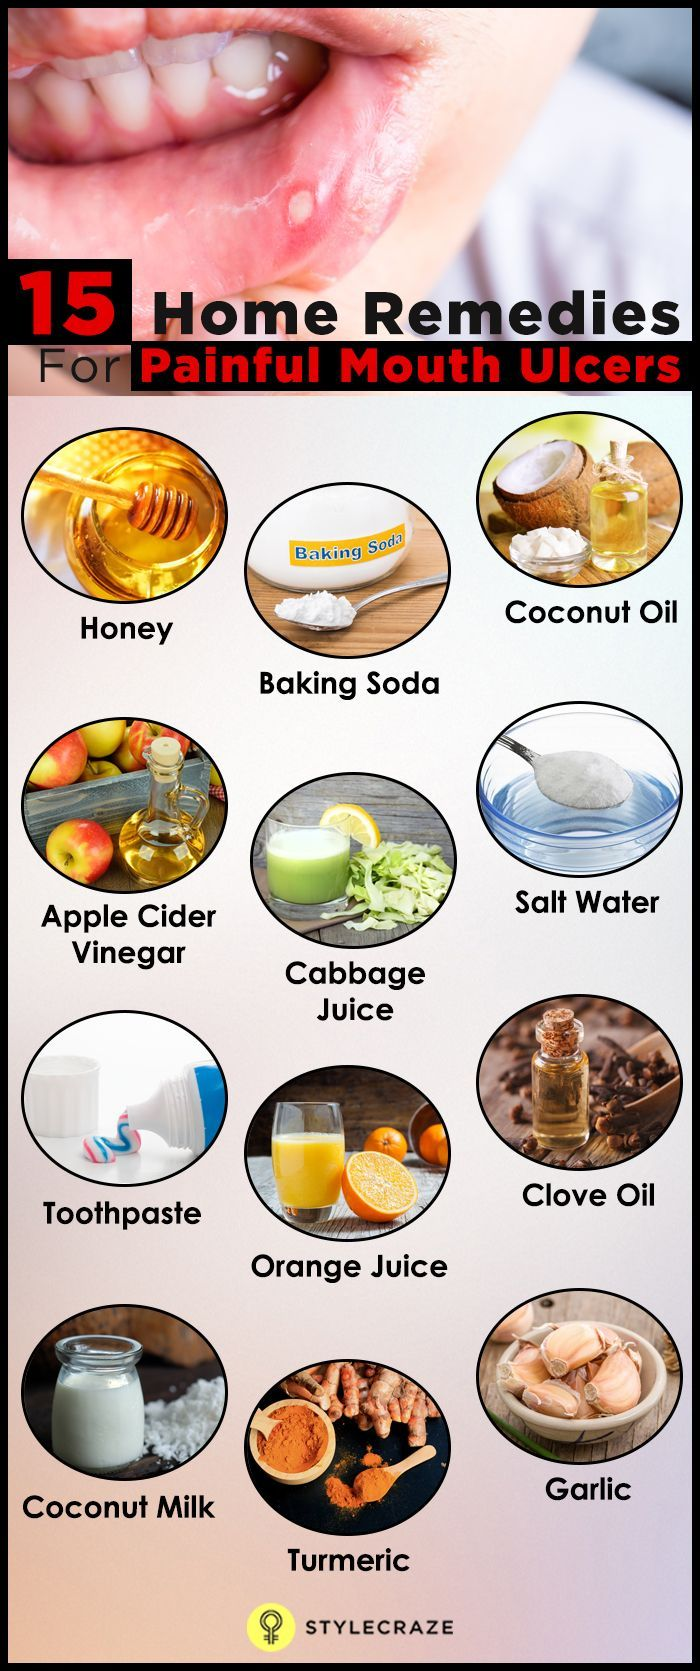 Mouth ulcers can be extremely painful and can hinder your ability to eat and speak. Check out Top 15 Home Remedies To Cure Mouth Ulcers.